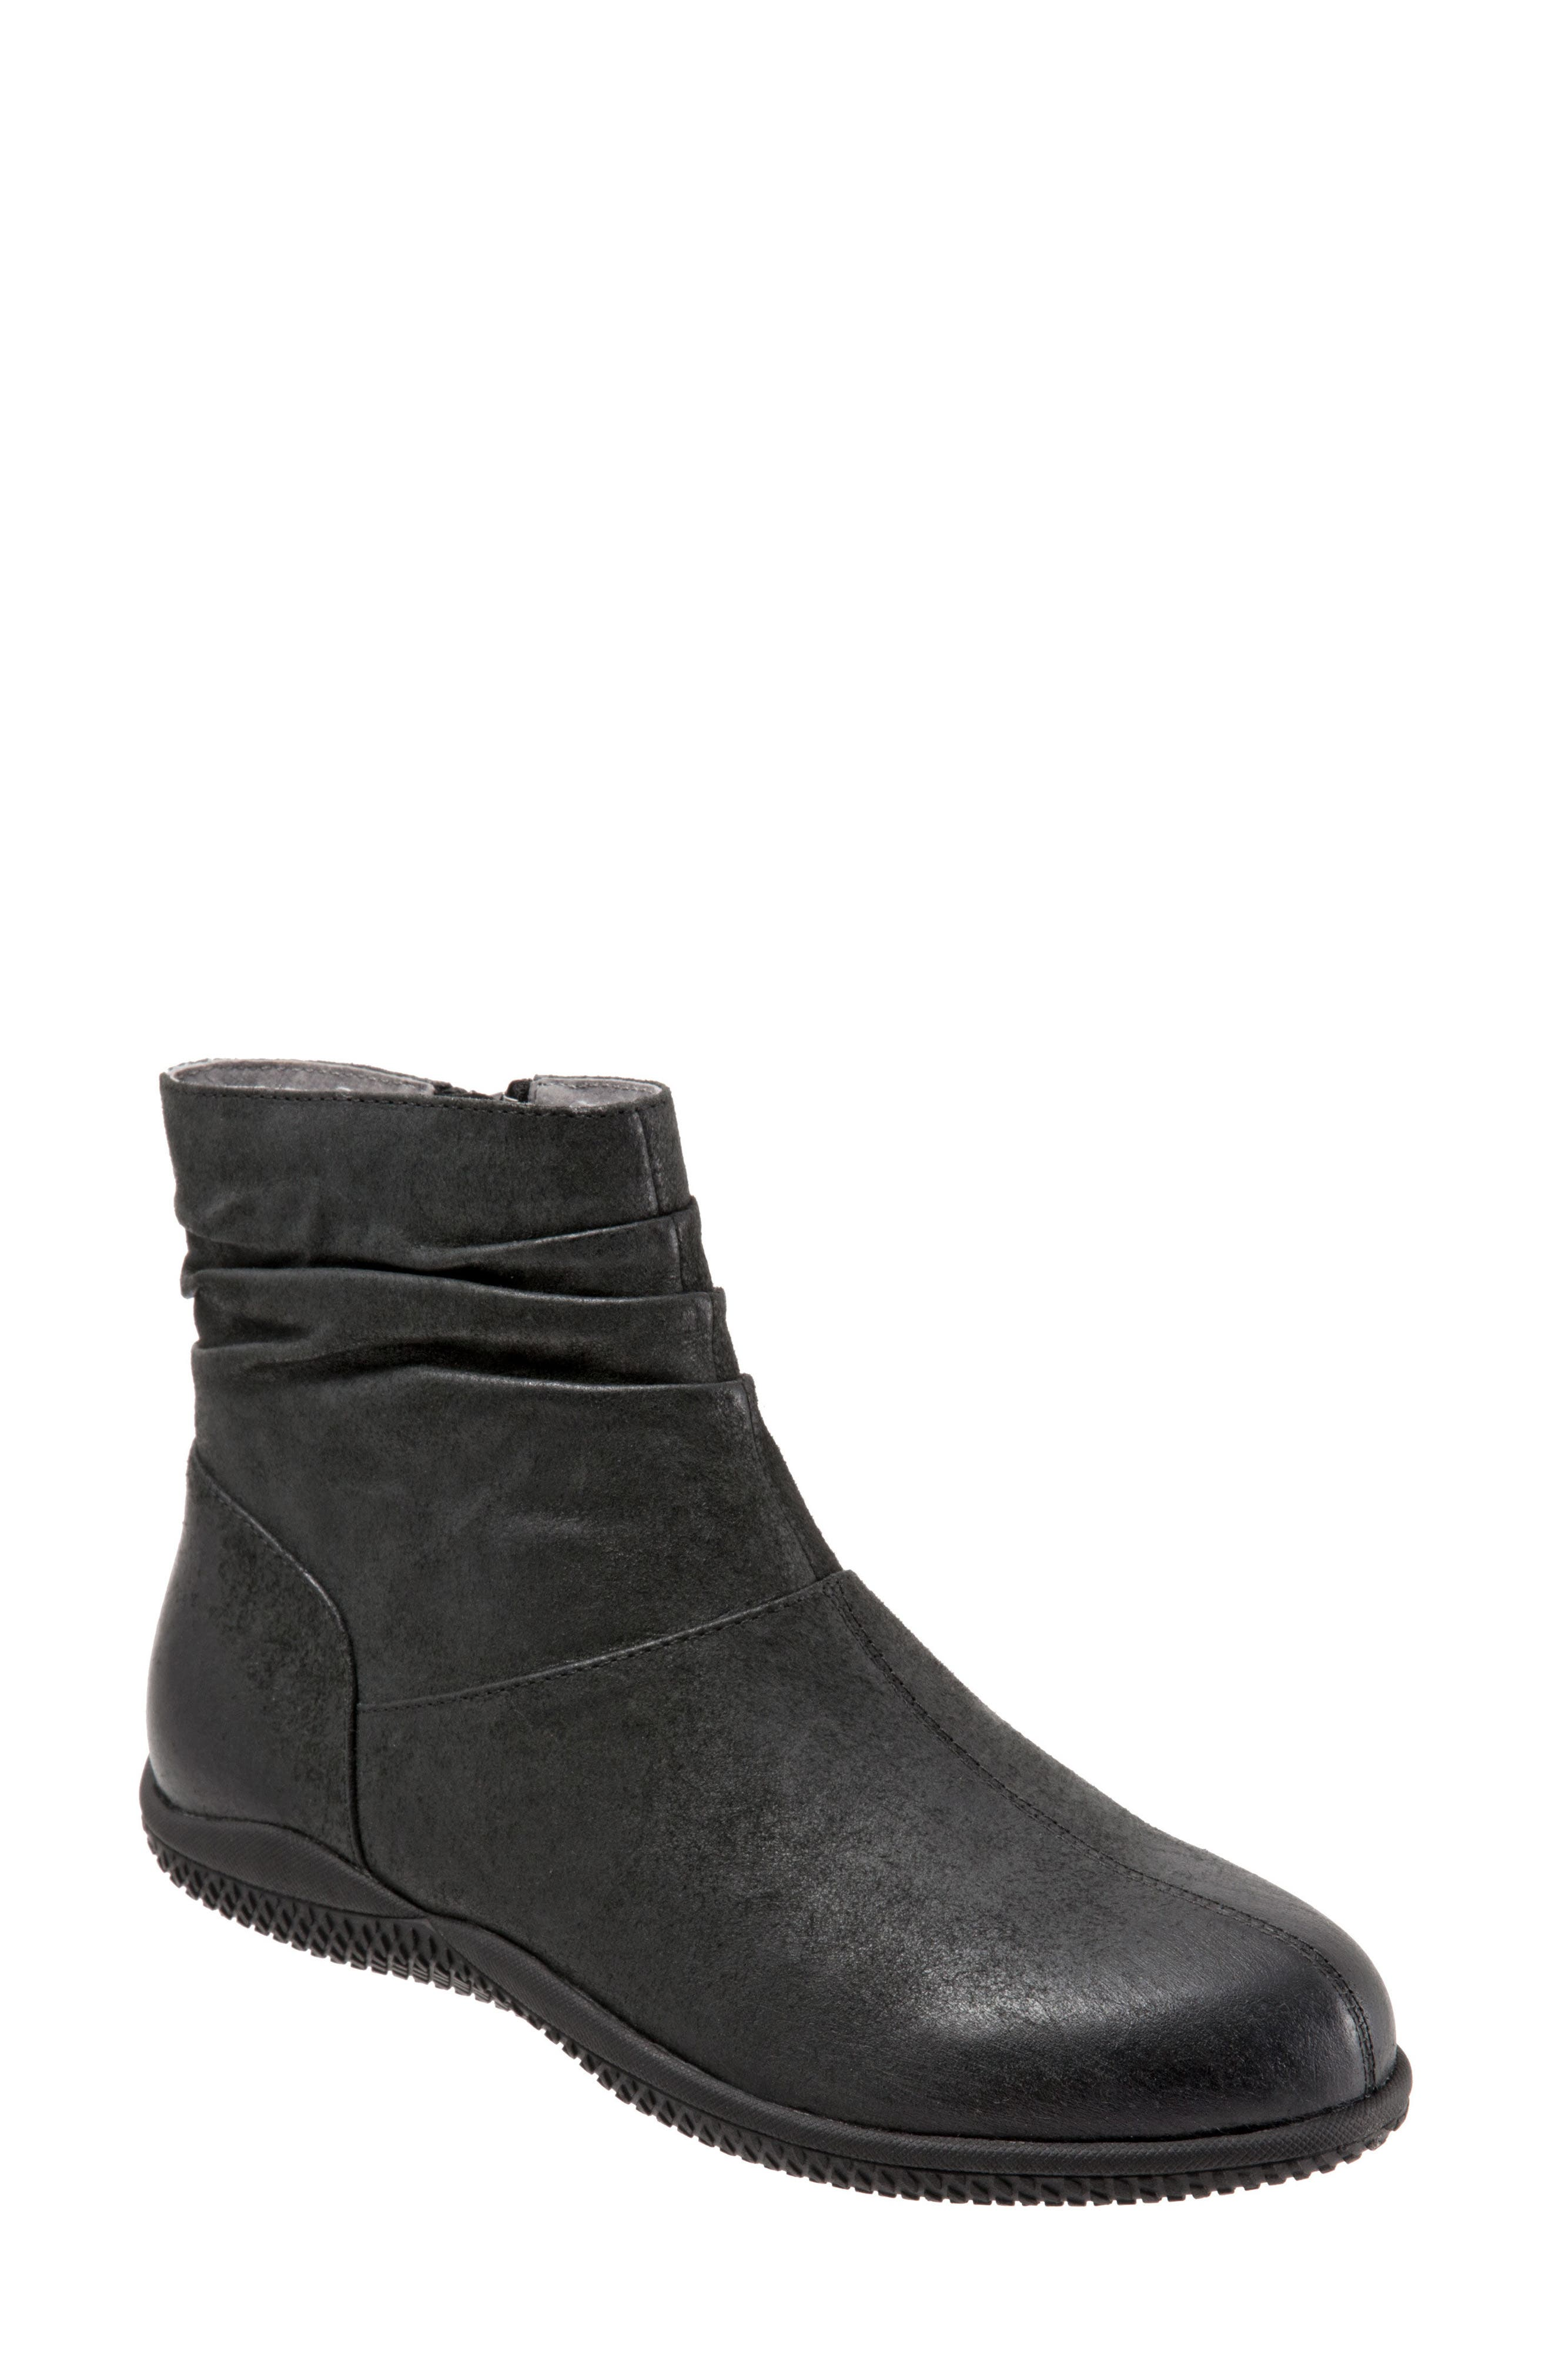 'Hanover' Leather Boot,                             Main thumbnail 1, color,                             006